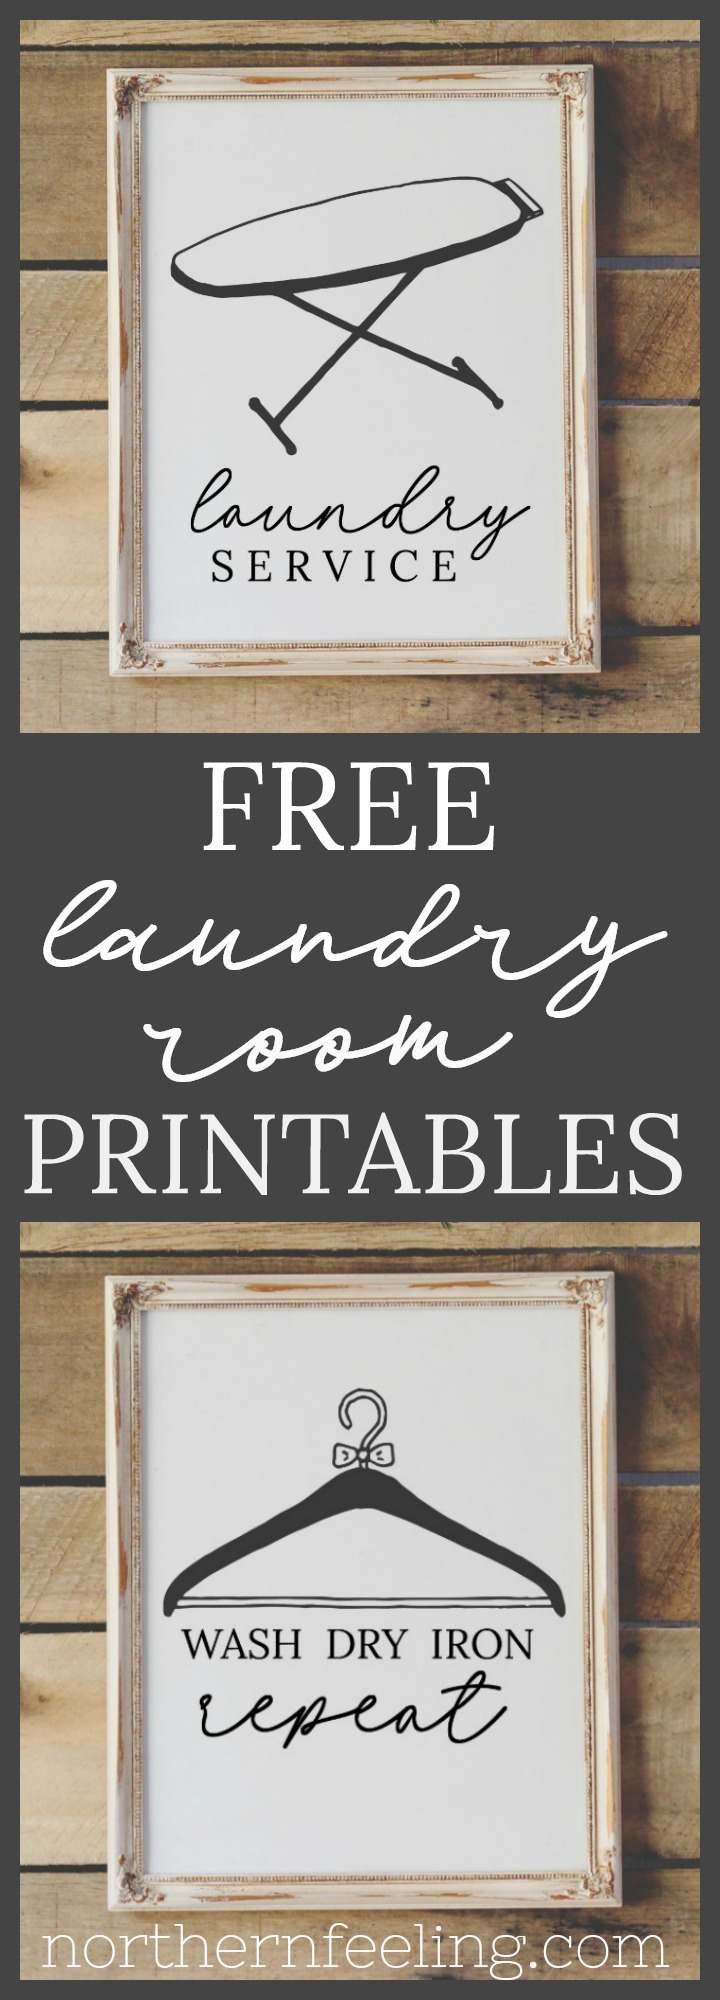 free laundry room printables northernfeeling.com